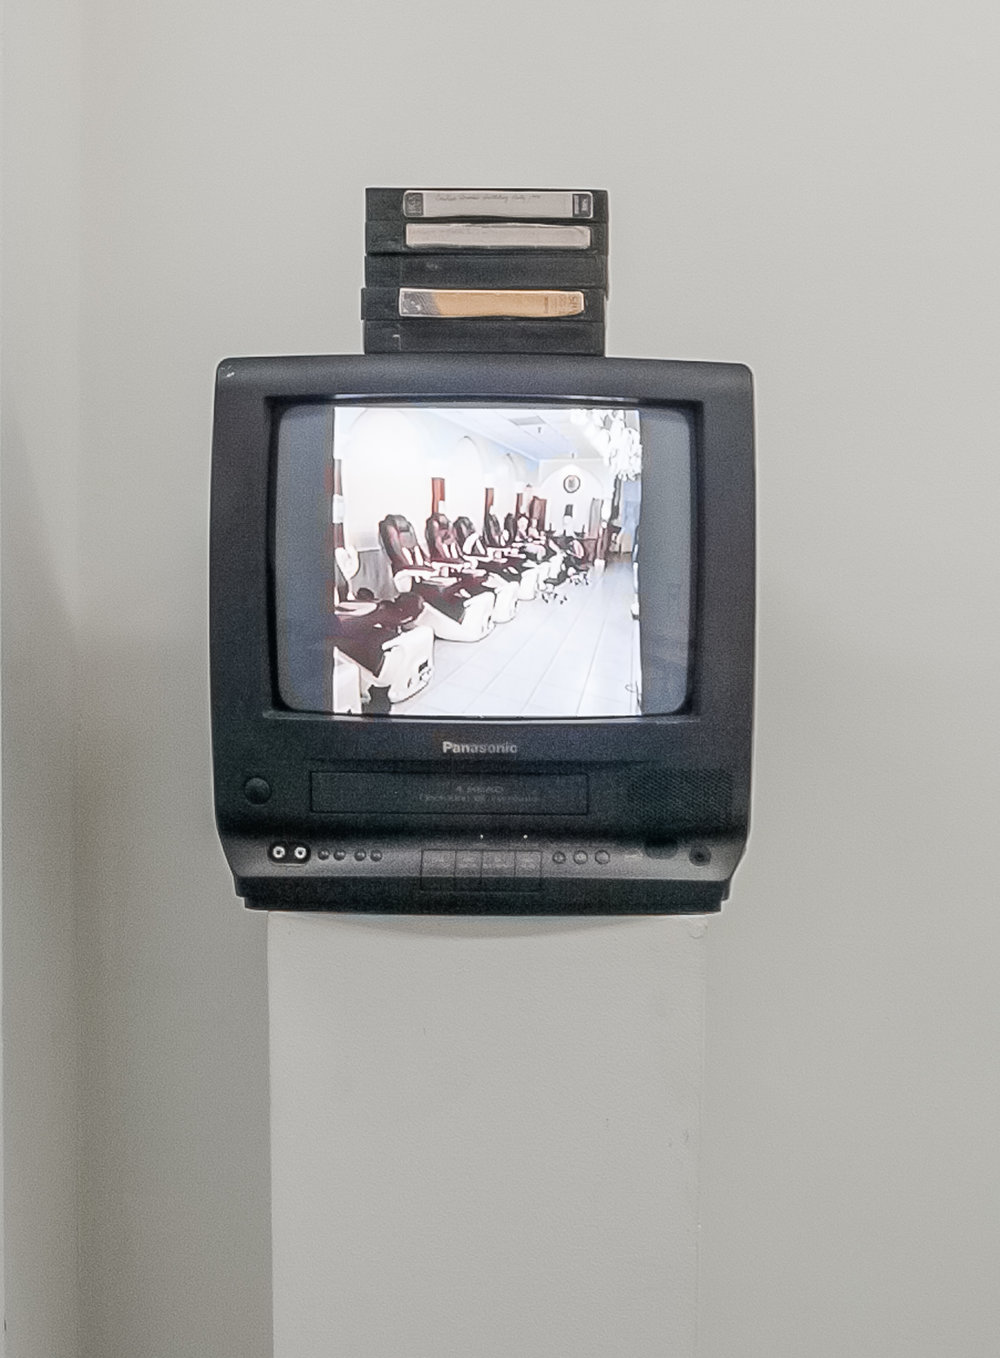 1 Families Chrismas (replica),  2017 porcelain, Panasonic TV/VCR combo, video [Sequence 02 1 (plantain mix), 19 mins 37 secs on loop], 15 x 16 x 20 inches overall